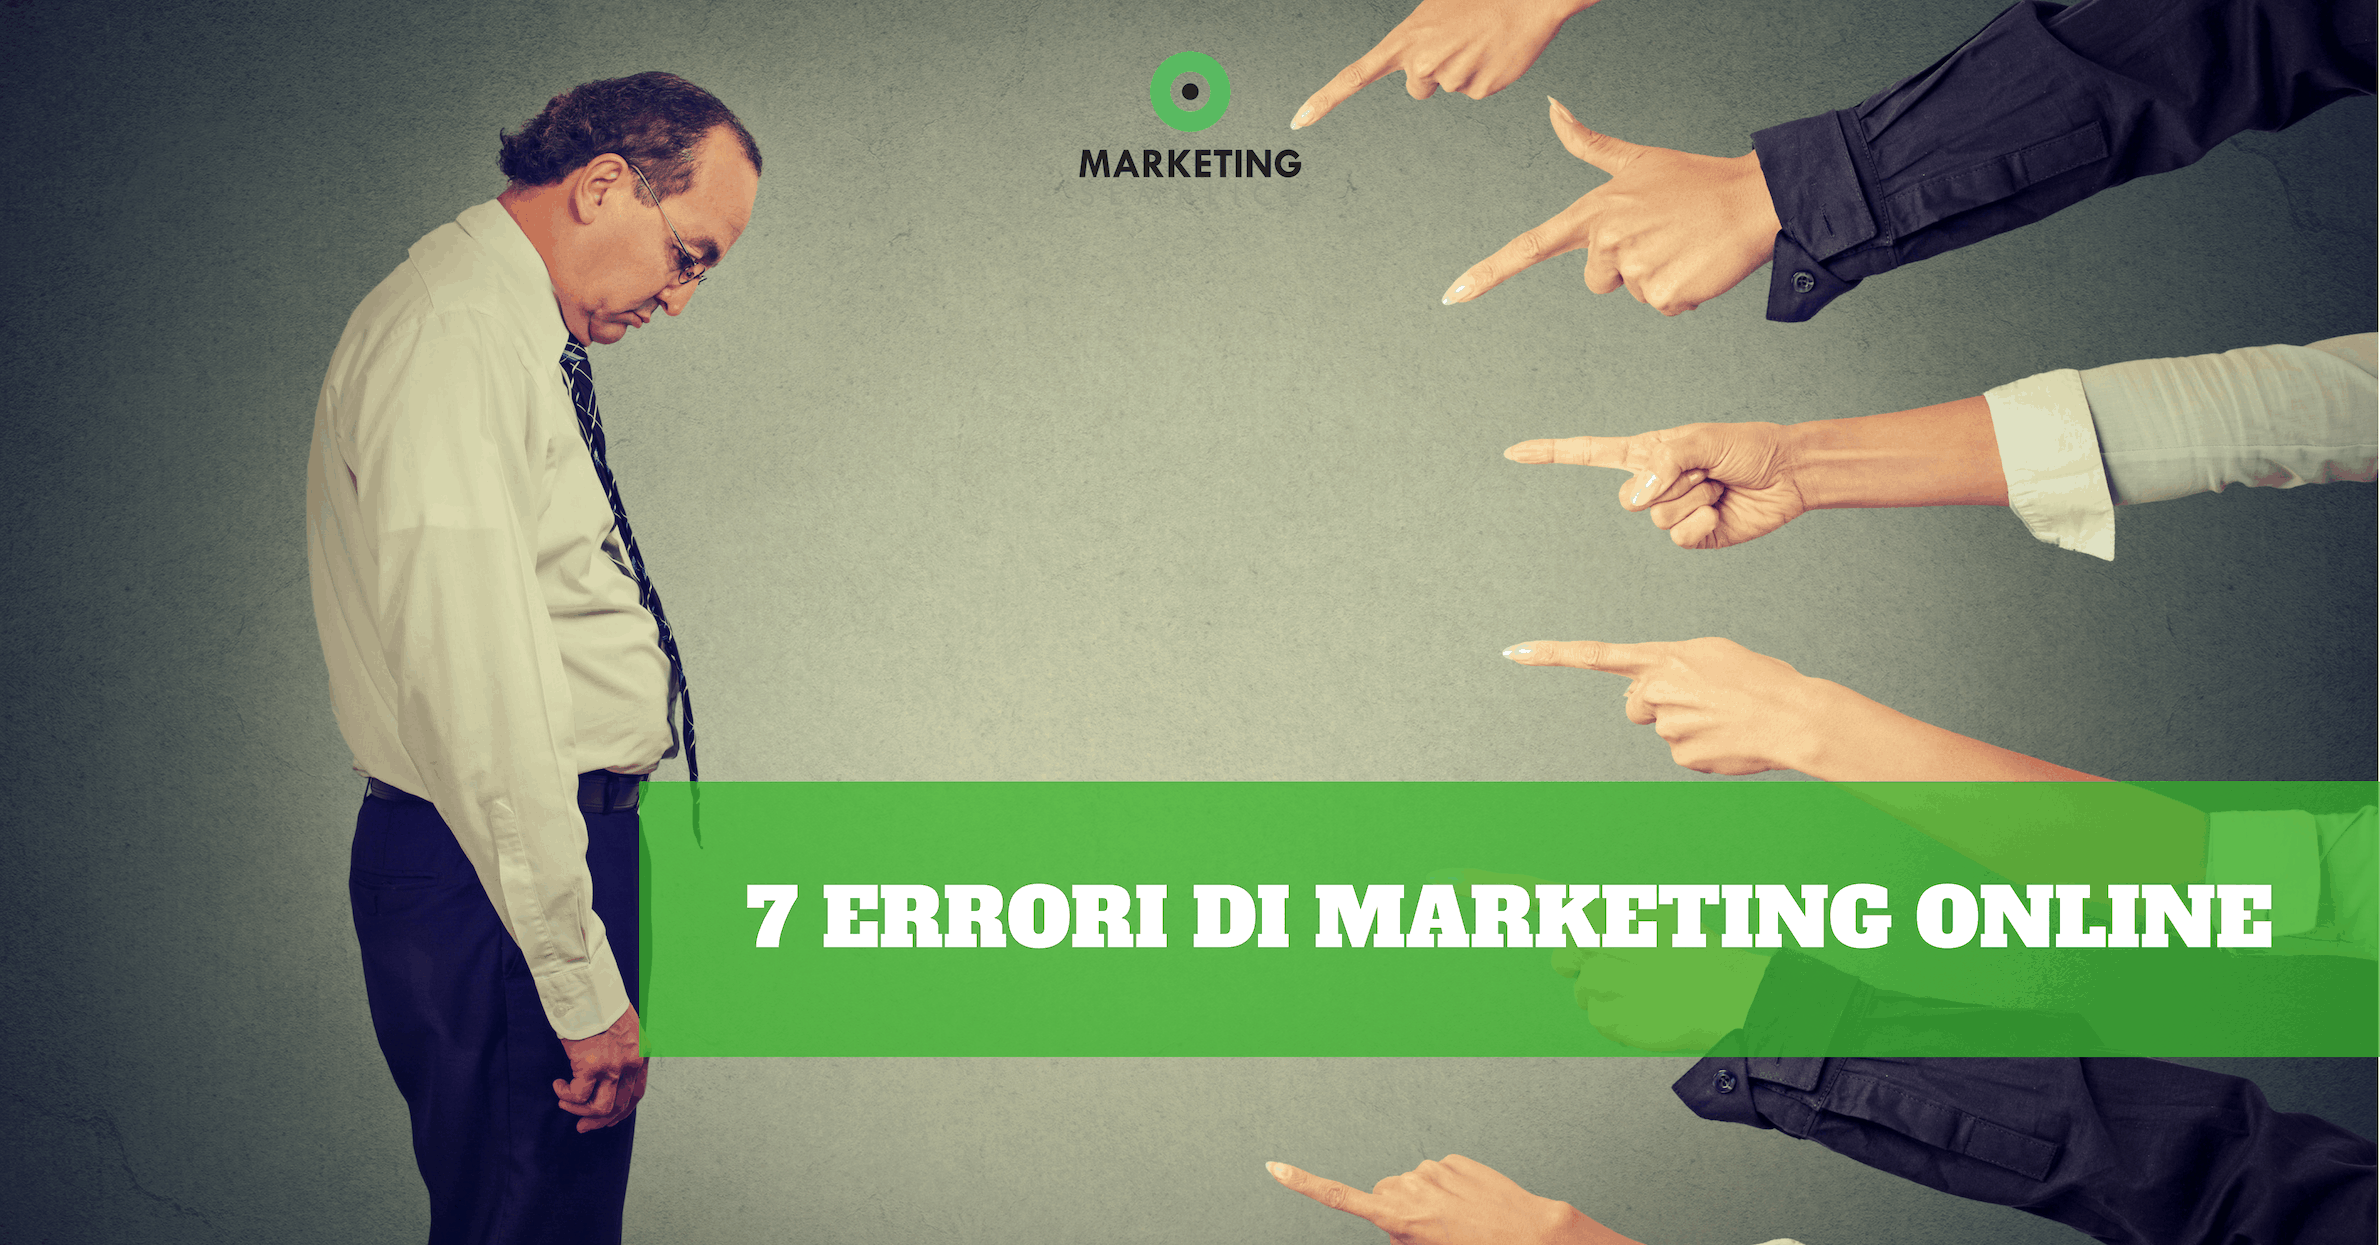 #7 Errori di Marketing che impediscono alla tua impresa di crescere online